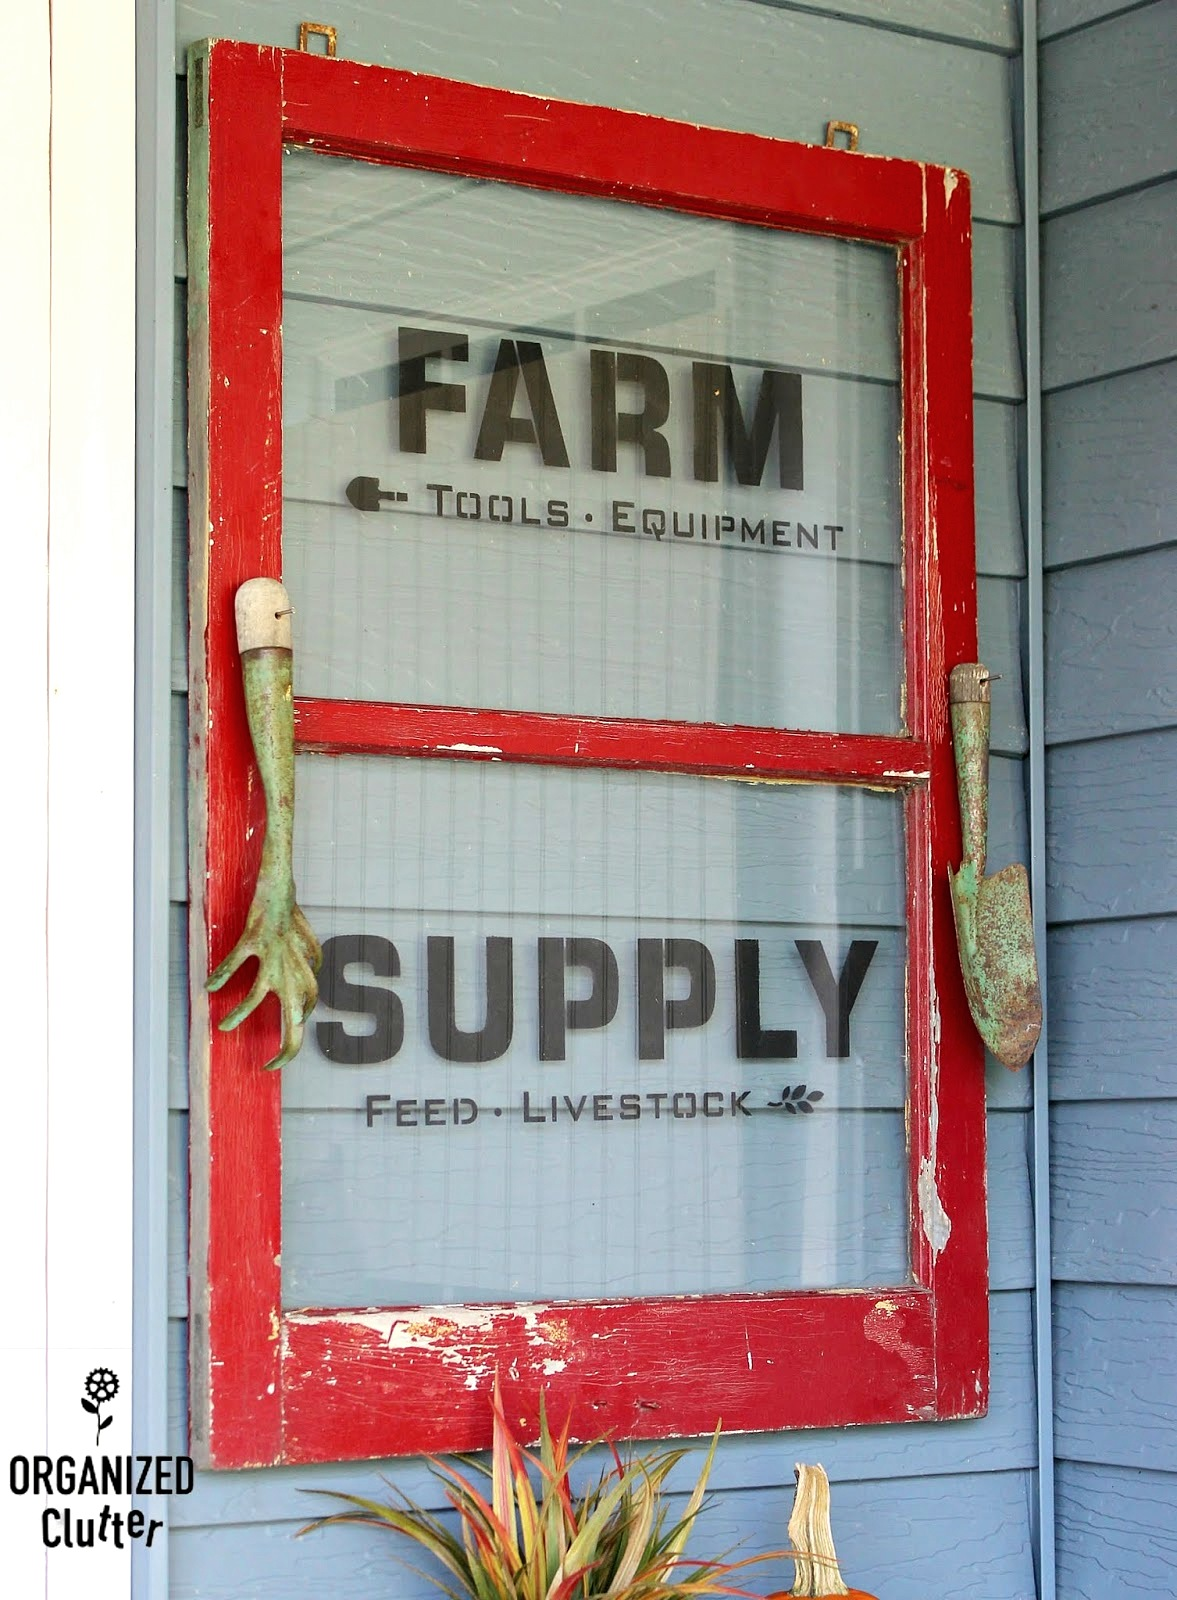 Vintage window Farm Supply sign by Organized Clutter, featured on Funky Junk Interiors